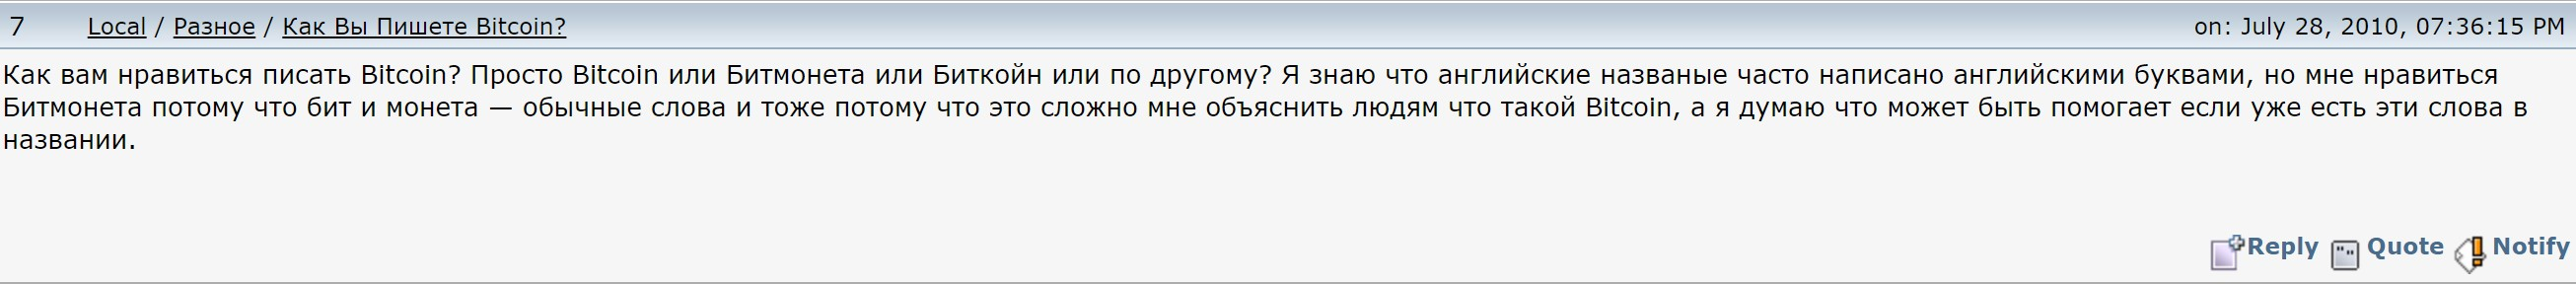 A Russian Language Post by NewLibertyStandard From July 28 2010. Source: Bitcointalk.